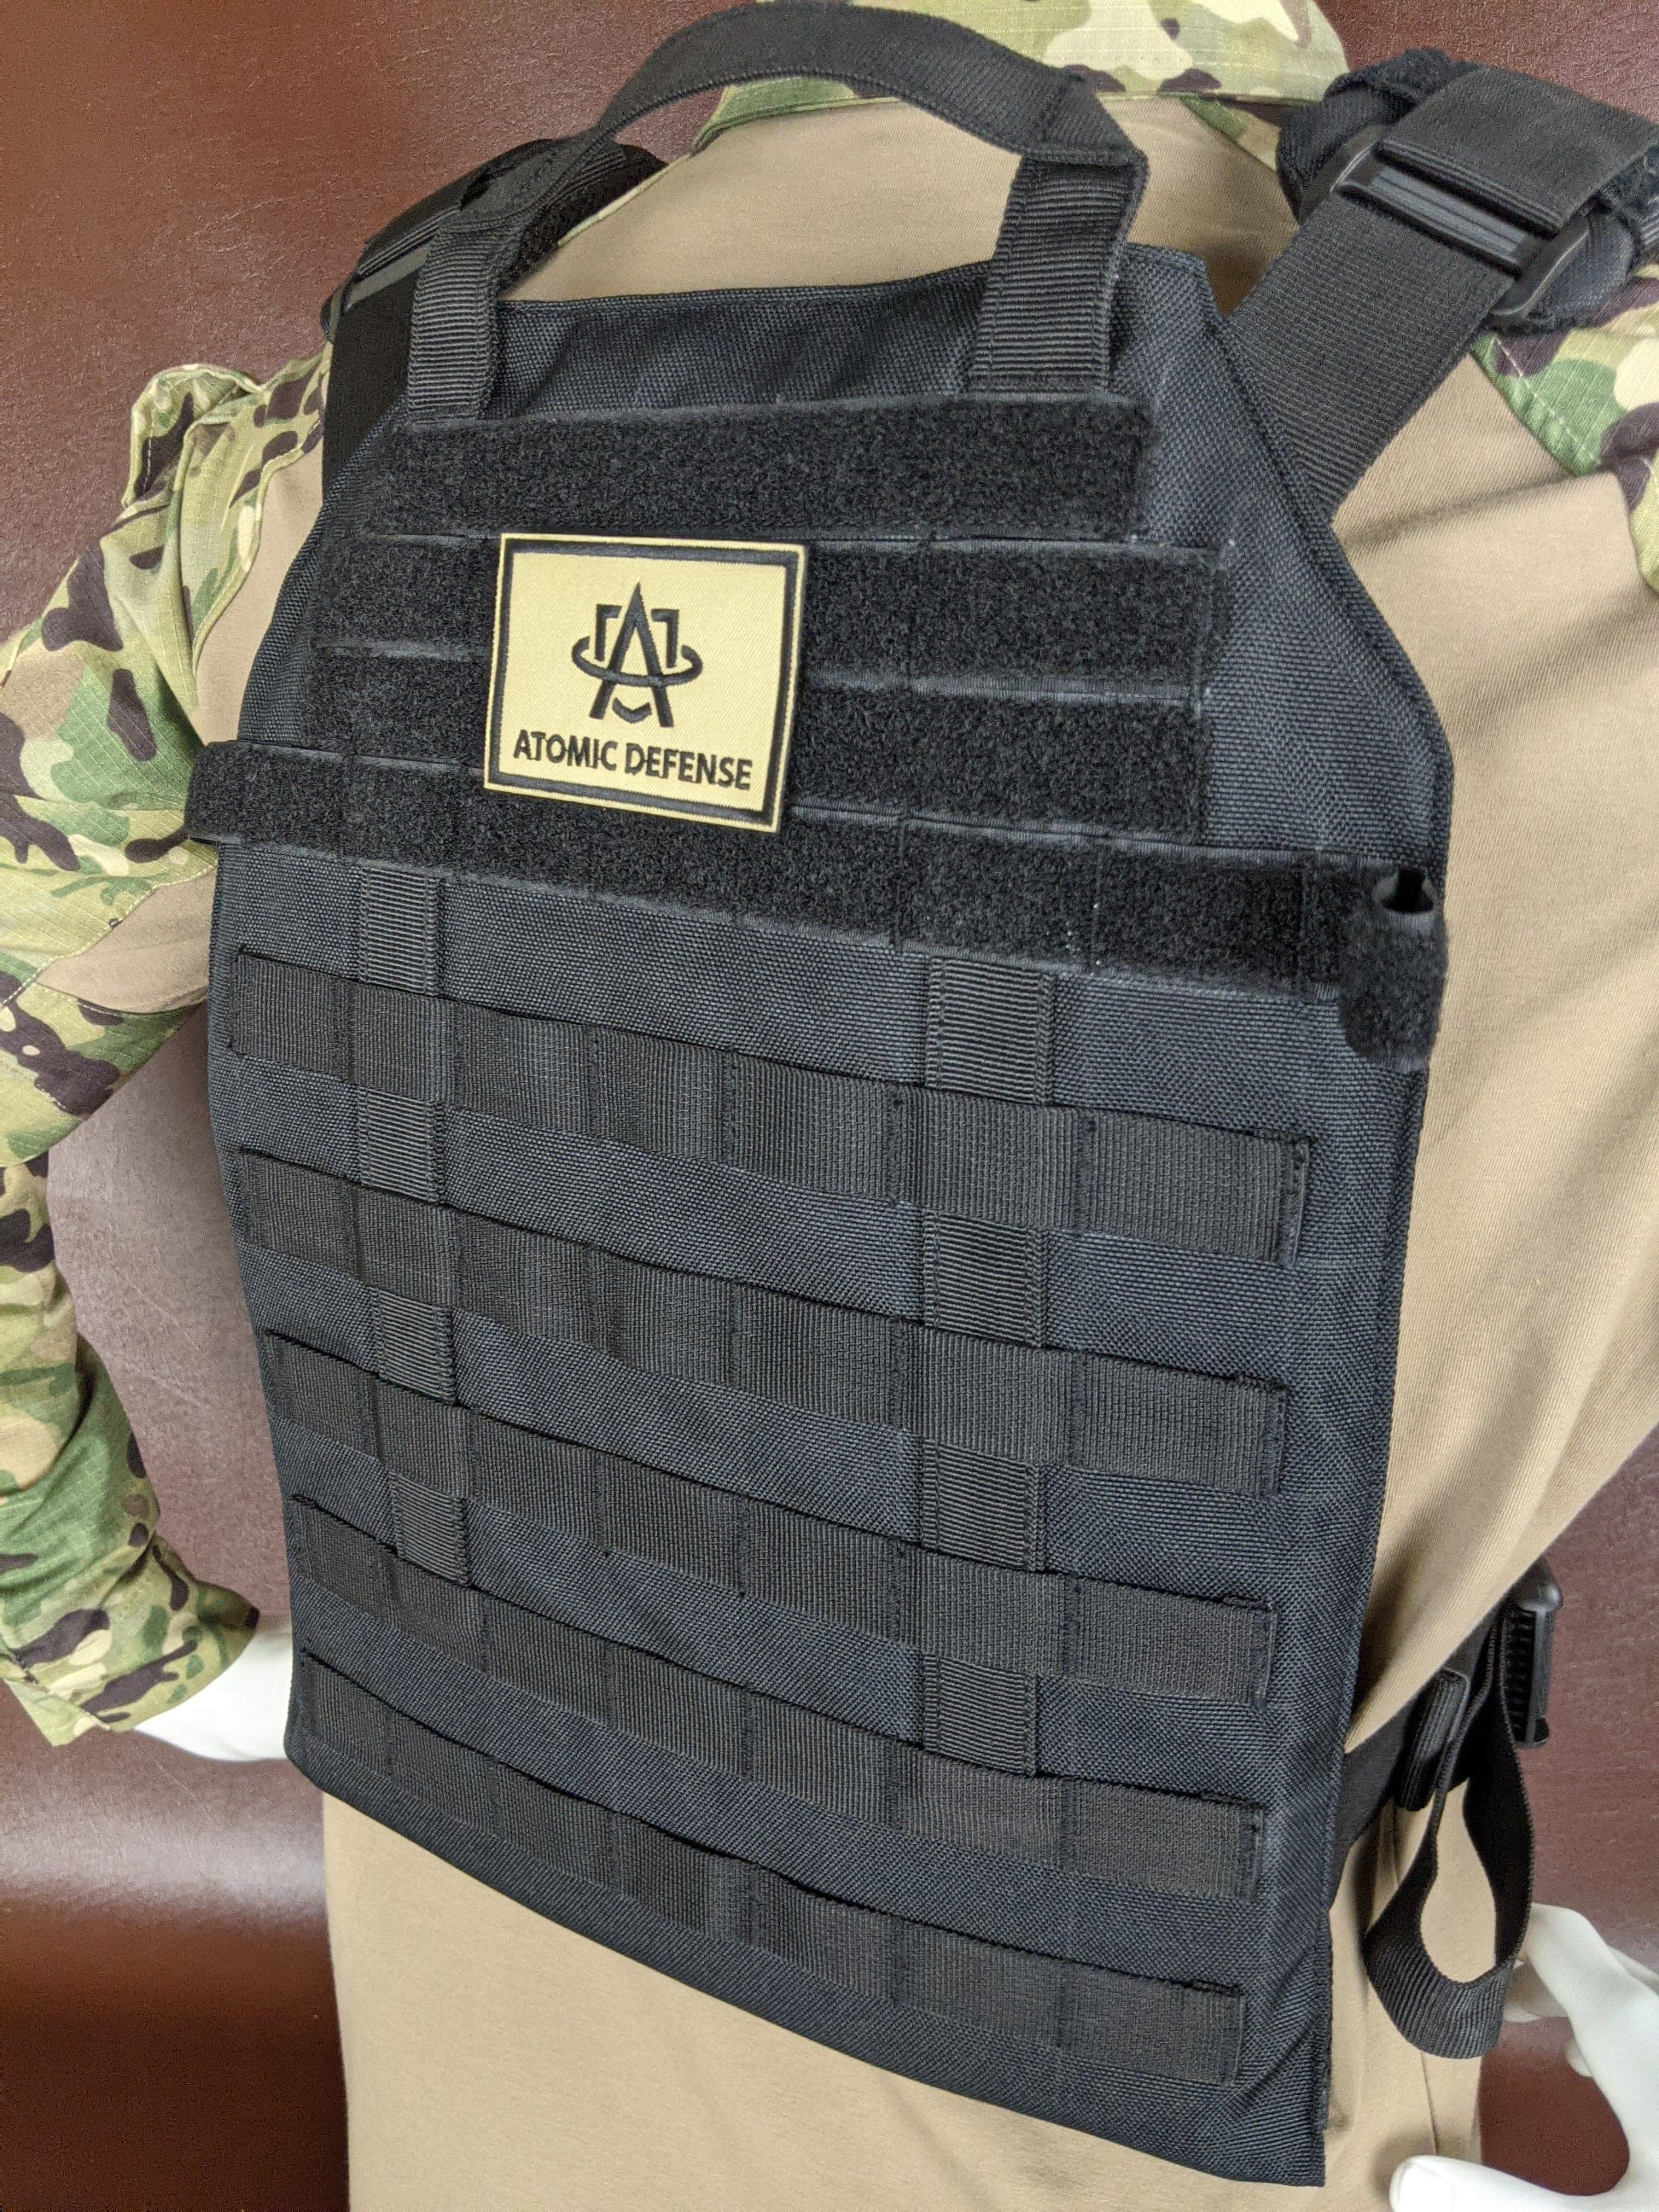 10x12 Armor Plate Carrier with IIIA Plates - Atomic Defense